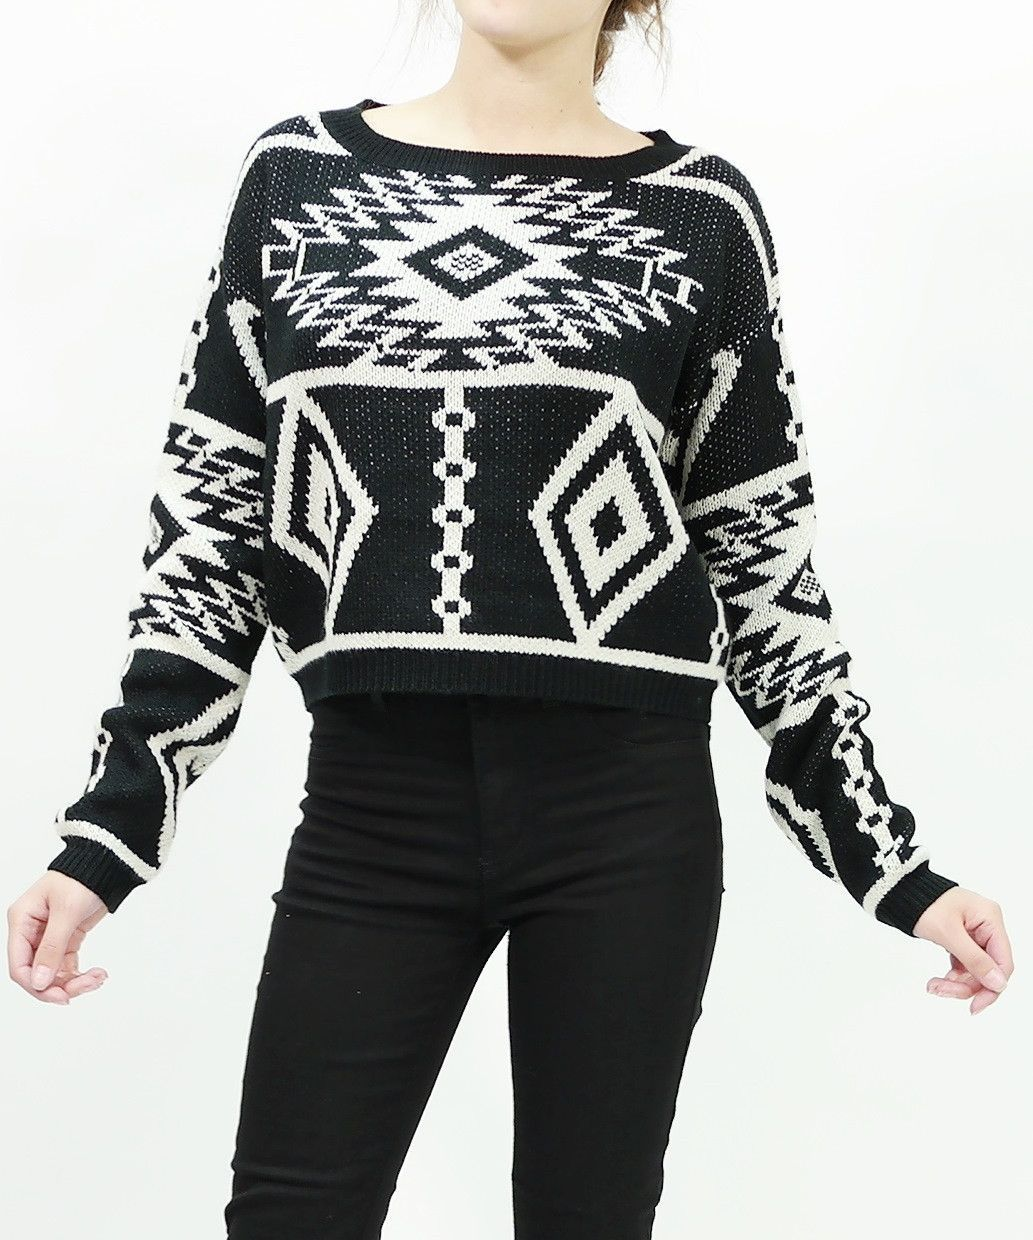 84a1f558cc95e6 Long sleeve knit tribal aztec print crop sweater tops